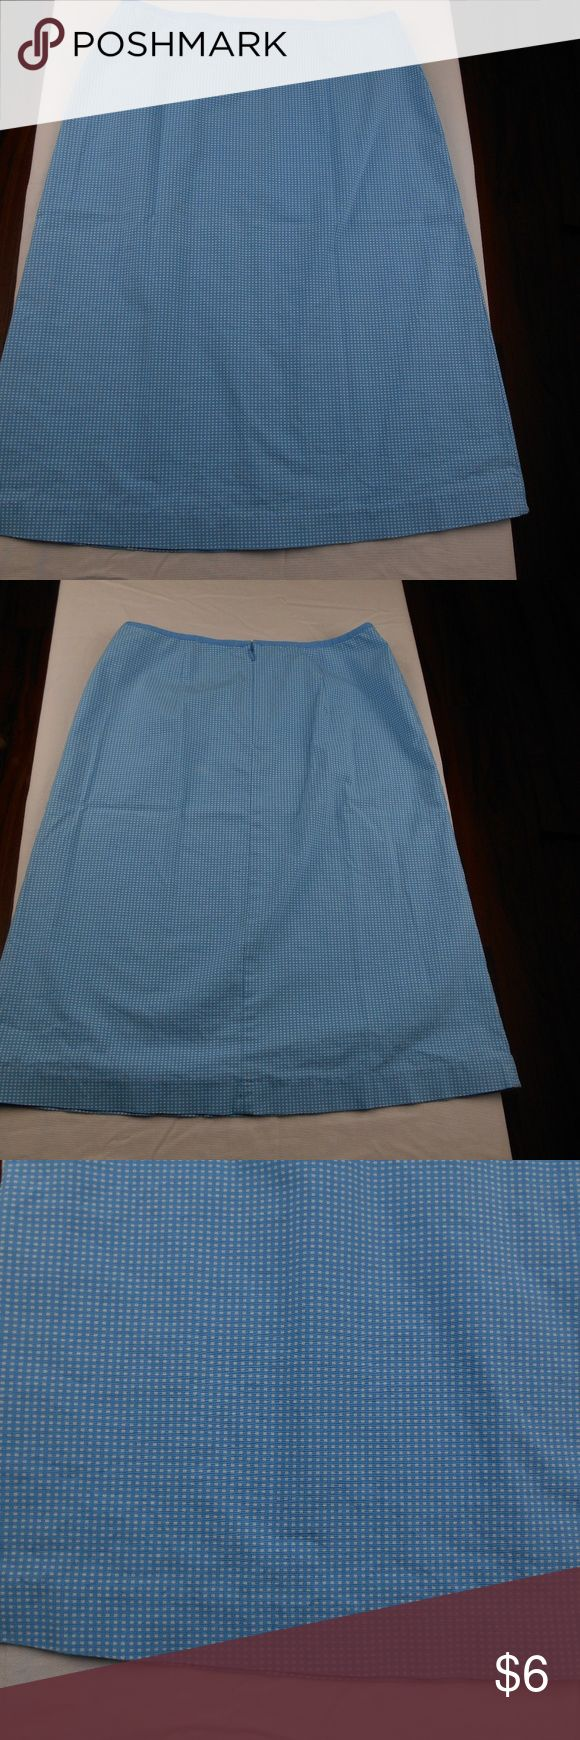 Gap Stretch Skirt Blue/White Gap Stretch Skirt Blue/White Great Preowned Condition Size 2  no pockets back zipper not lined all measurements are approximate taken laying flat close as i can get waist 13 inches (26 inches total) hips 18 inches (36 inches total) length 23 1/2 inches 98% cotton 2% lycra machine washable No Modeling No Trades Thank you for looking Inventory number A12 Gap Skirts